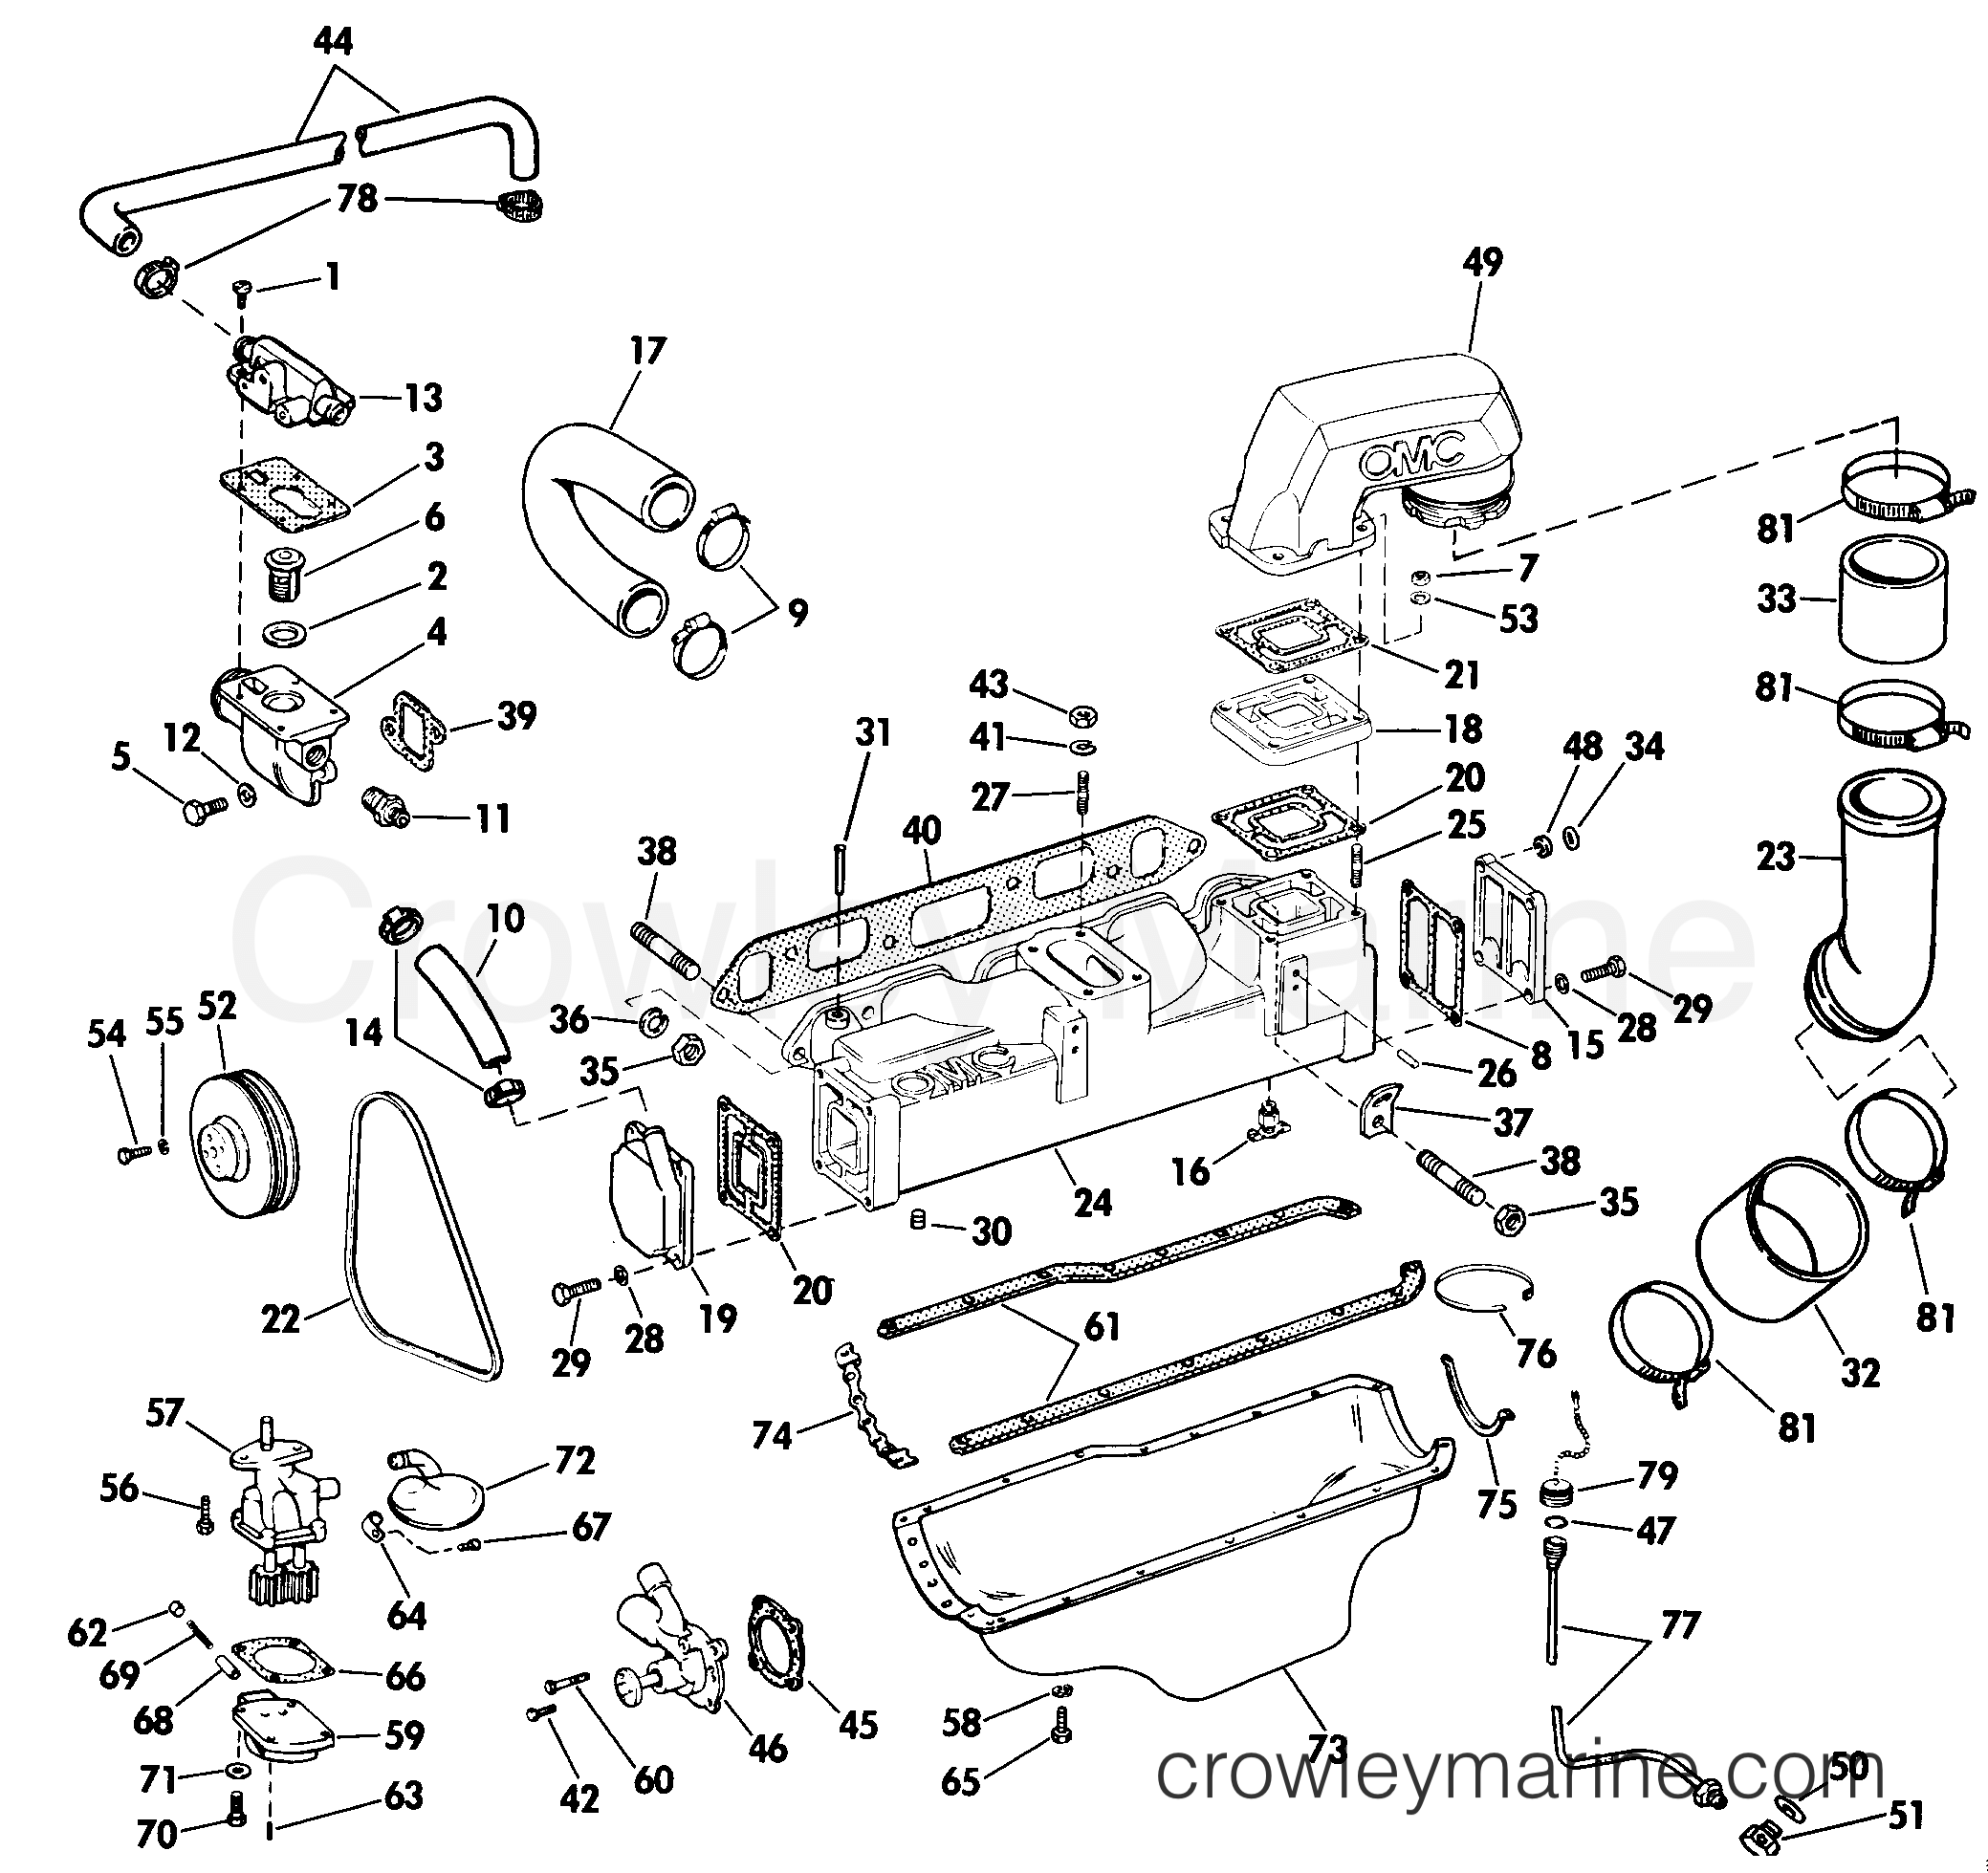 Omc Cooling Diagram Detailed Schematics Chrysler Marine Oiling Group 2 5 Litre Models 1985 Stern Drive Engine Parts